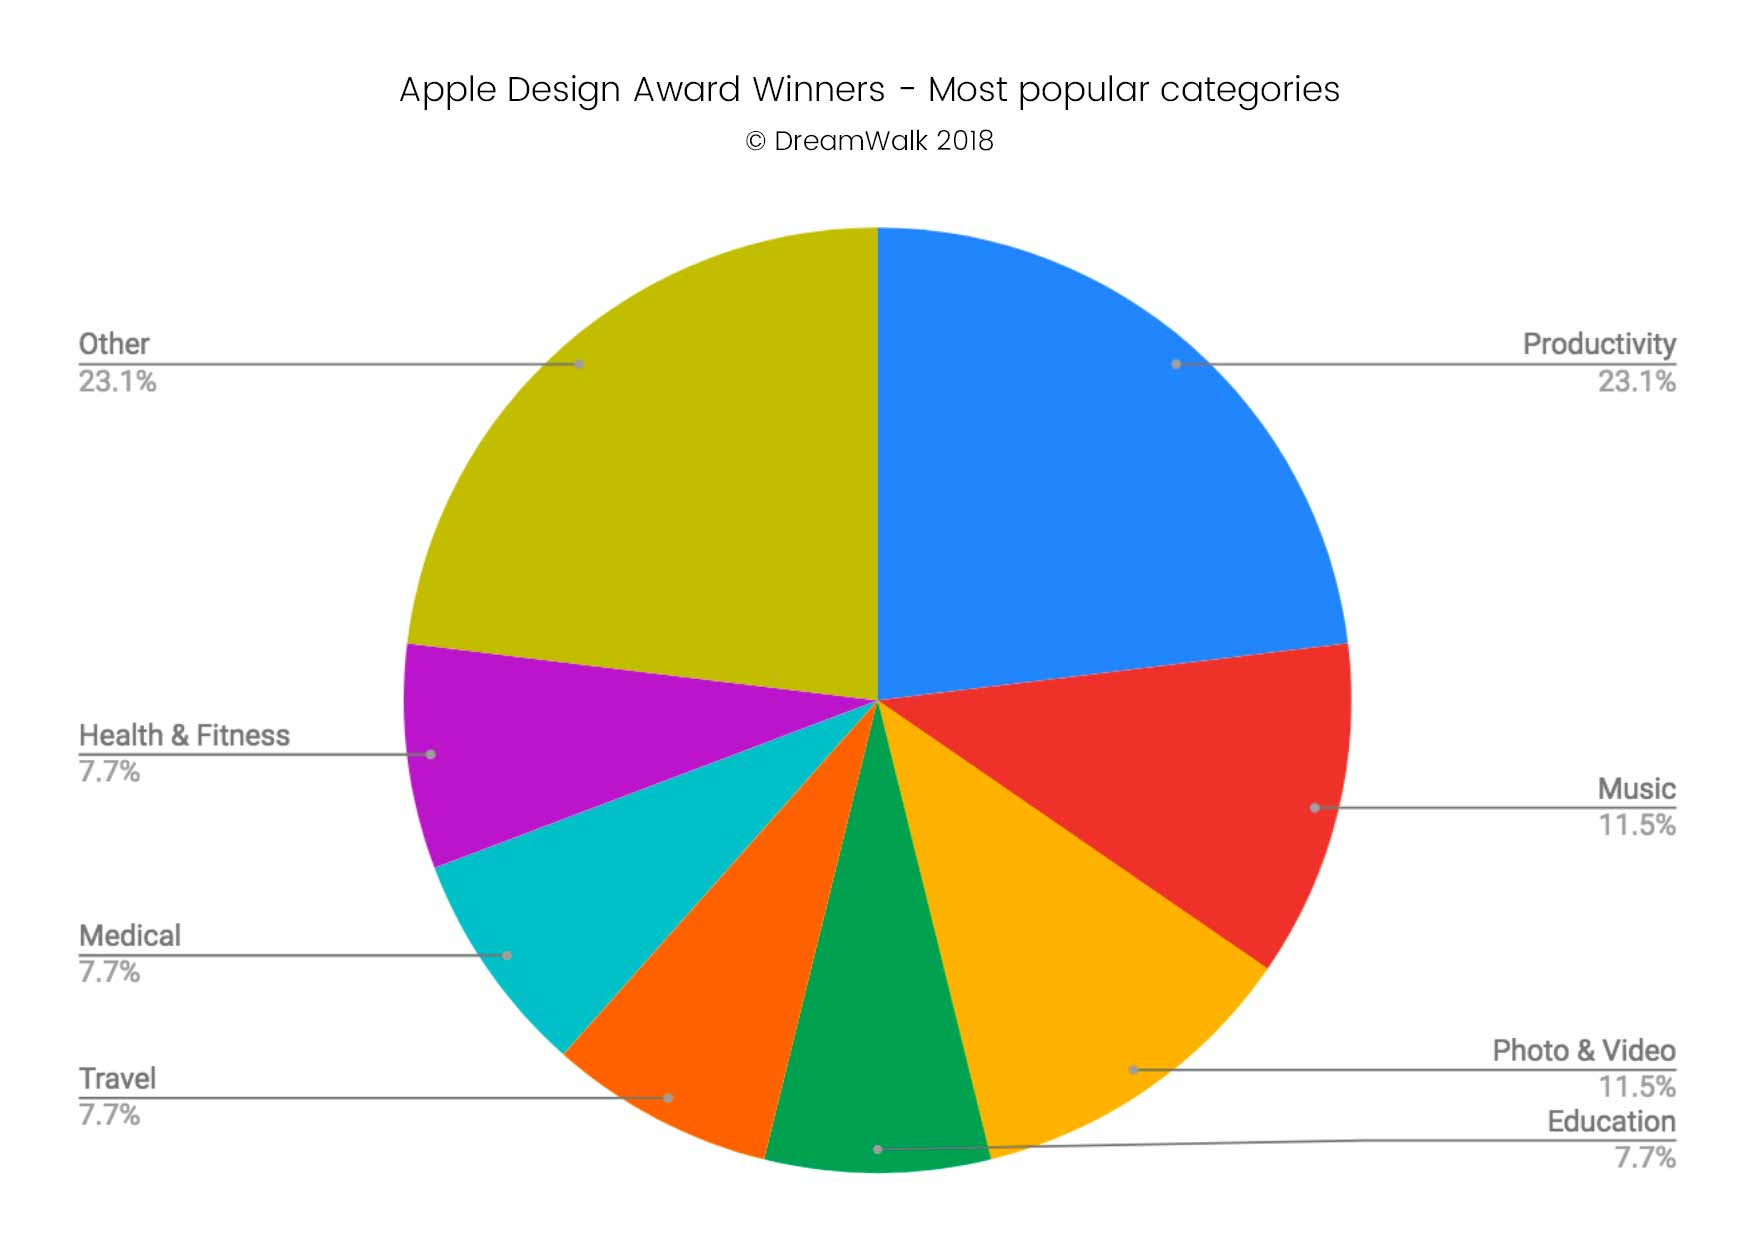 Apple Design Awards - Most popular categories